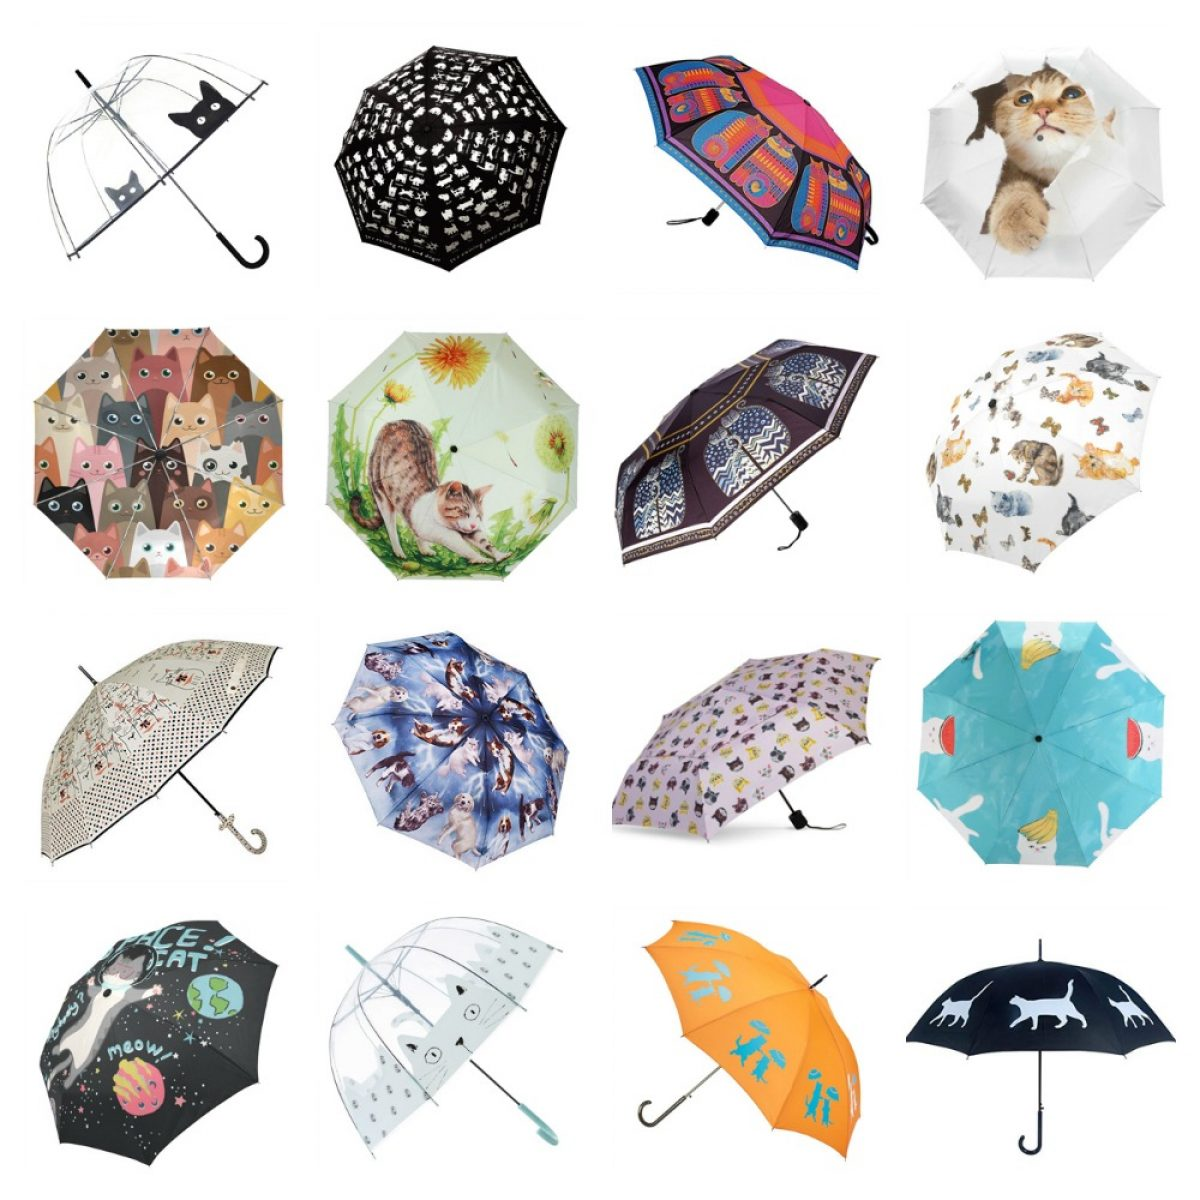 Cats Heads Seamless Pattern Vector Image Compact Travel Umbrella Windproof Reinforced Canopy 8 Ribs Umbrella Auto Open And Close Button Customized